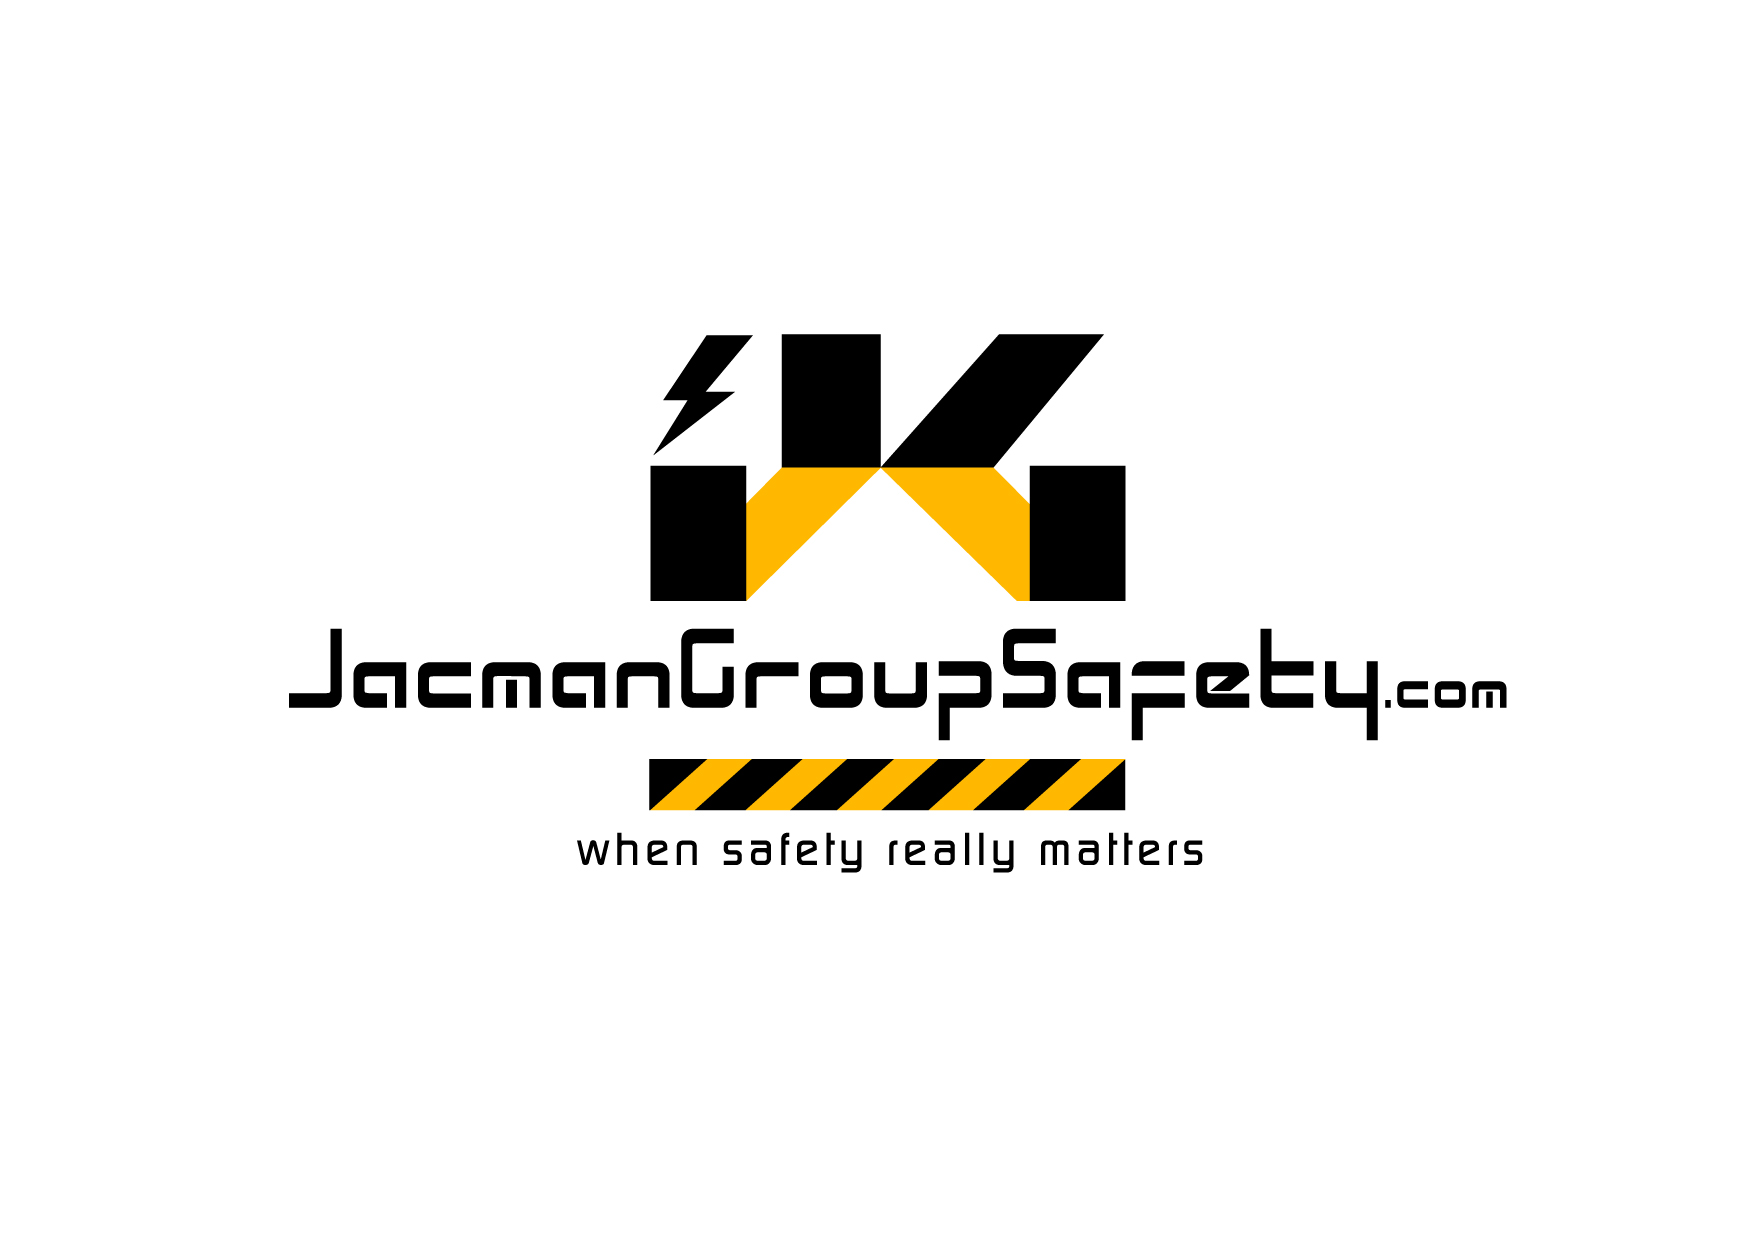 Logo Design by Wilfredo Mendoza - Entry No. 145 in the Logo Design Contest The Jacman Group Logo Design.